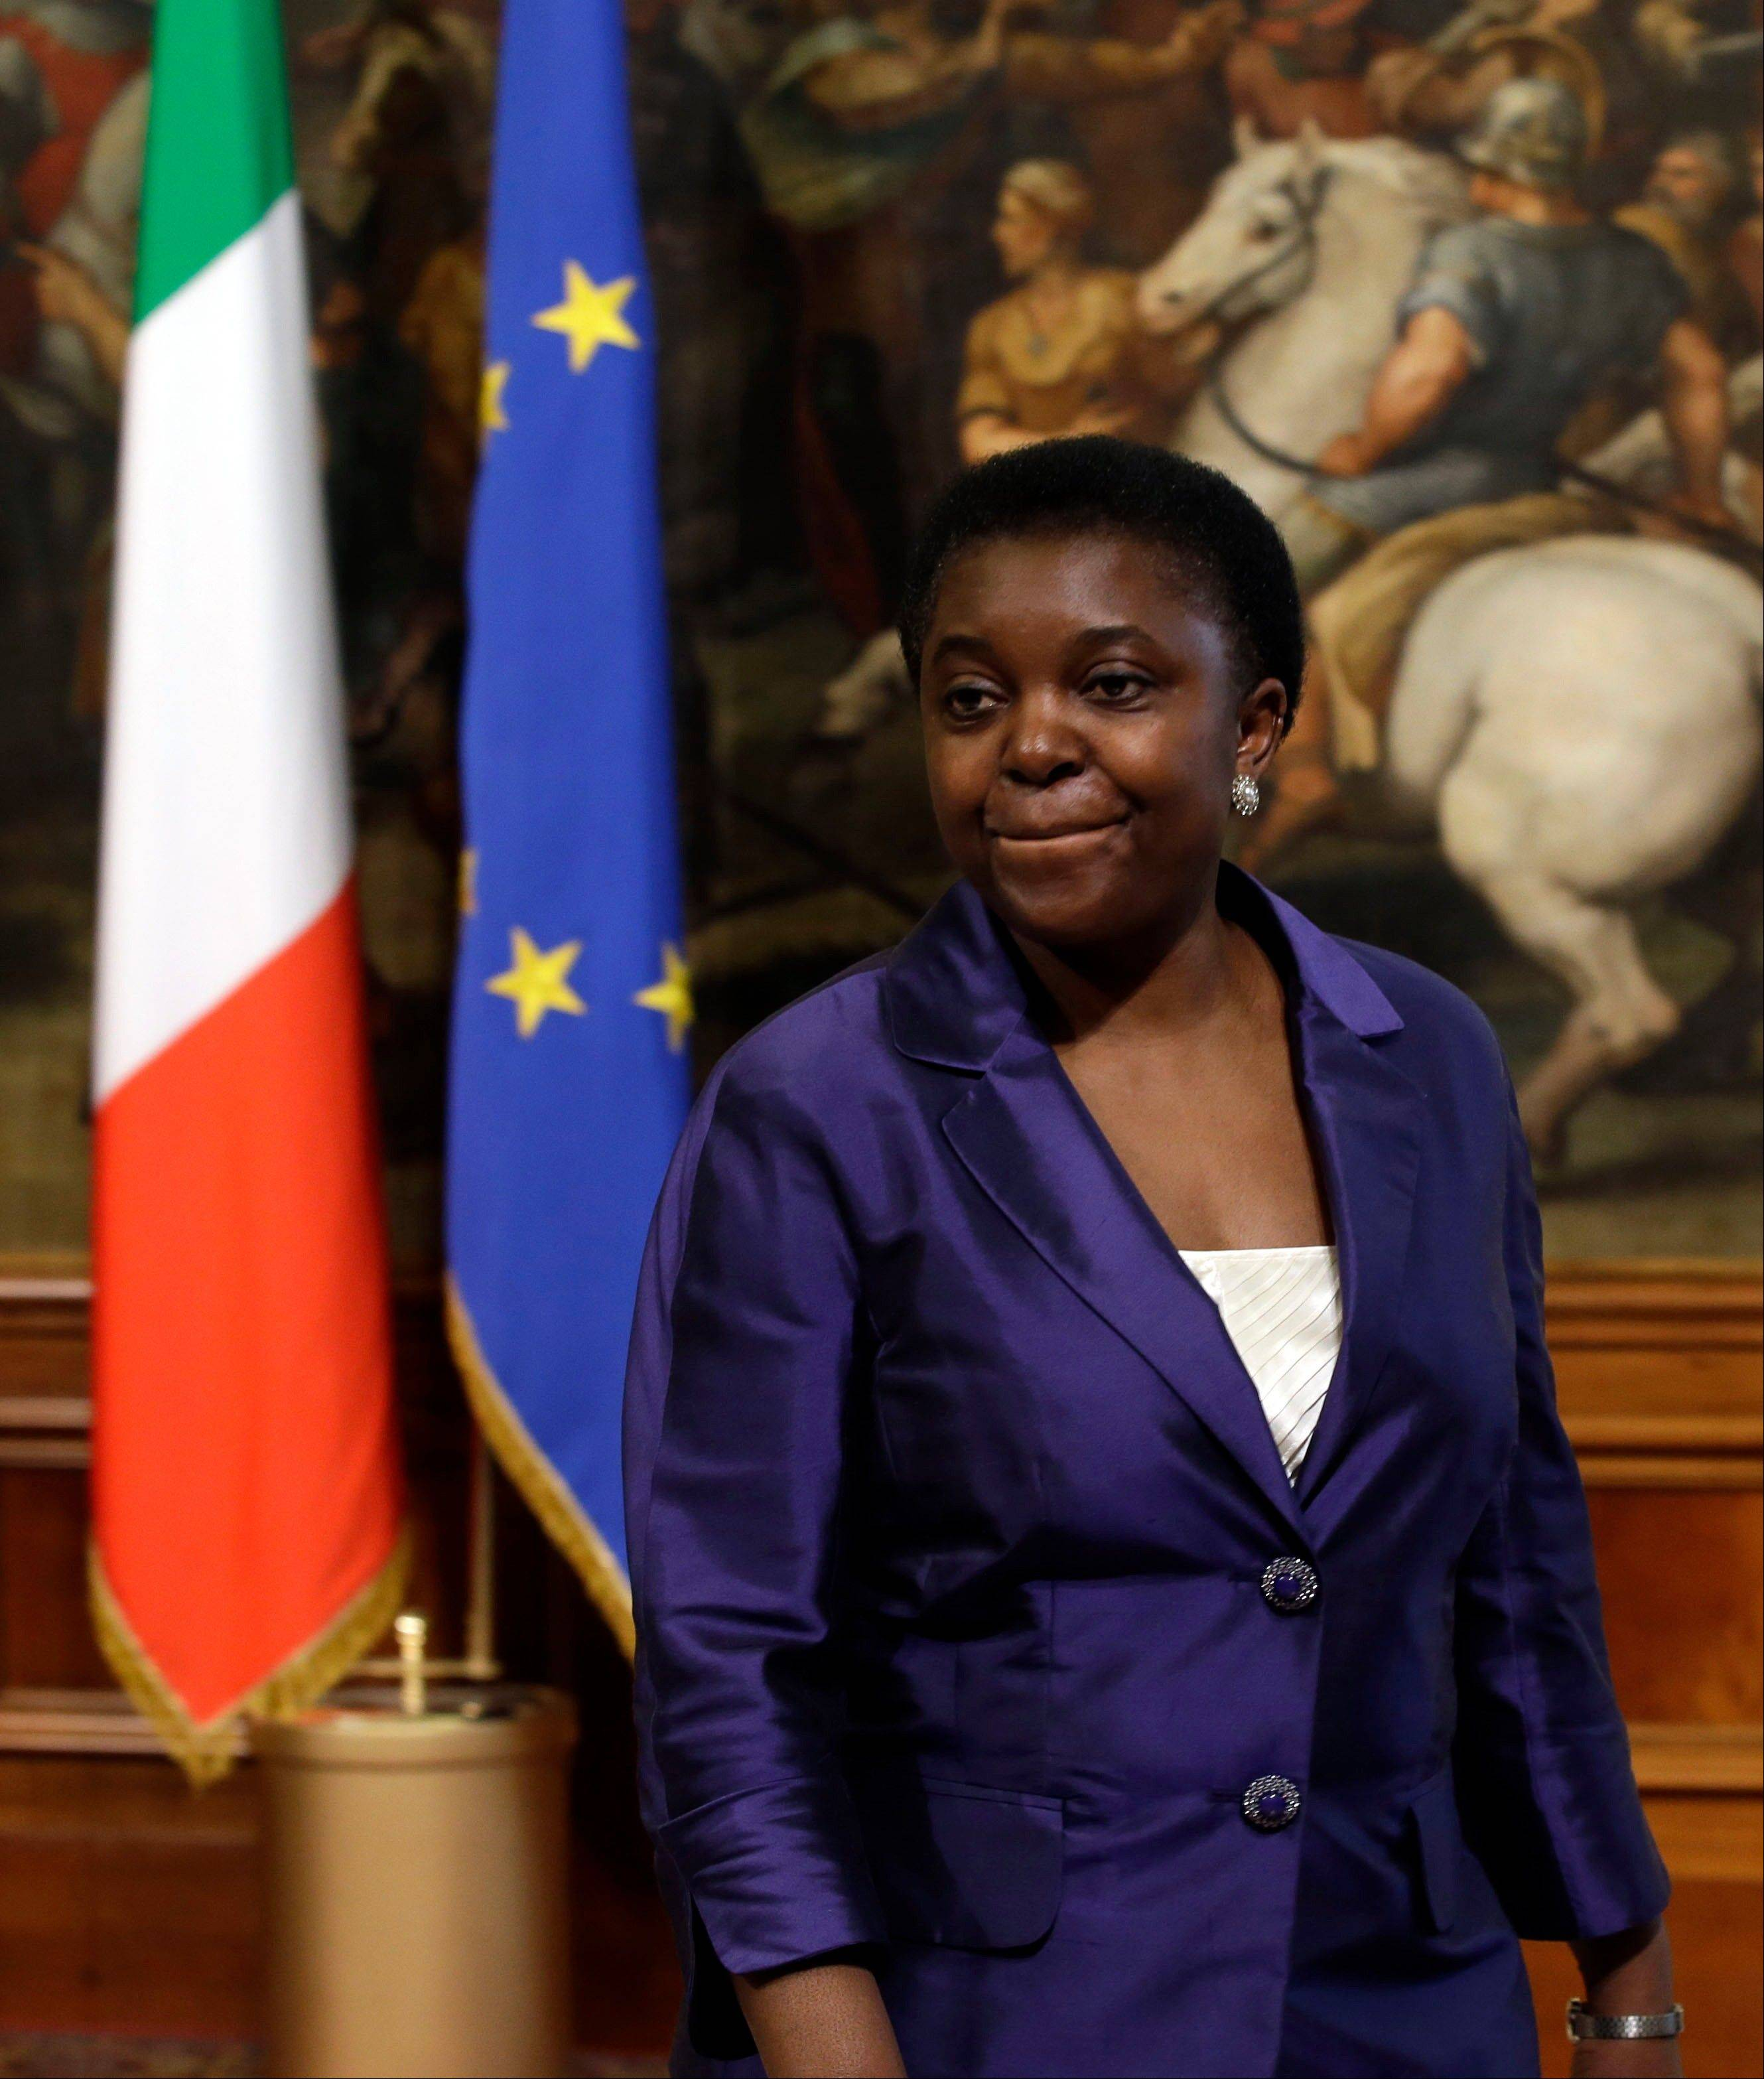 The appointment of Italy's first black cabinet minister, Cecile Kyenge, was initially hailed as a giant step forward for a country that has long been ill at ease with its increasing immigrant classes. Instead it has exposed Italy's ugly race problem. Kyenge, 48, was born in Congo and moved to Italy three decades ago to study medicine.